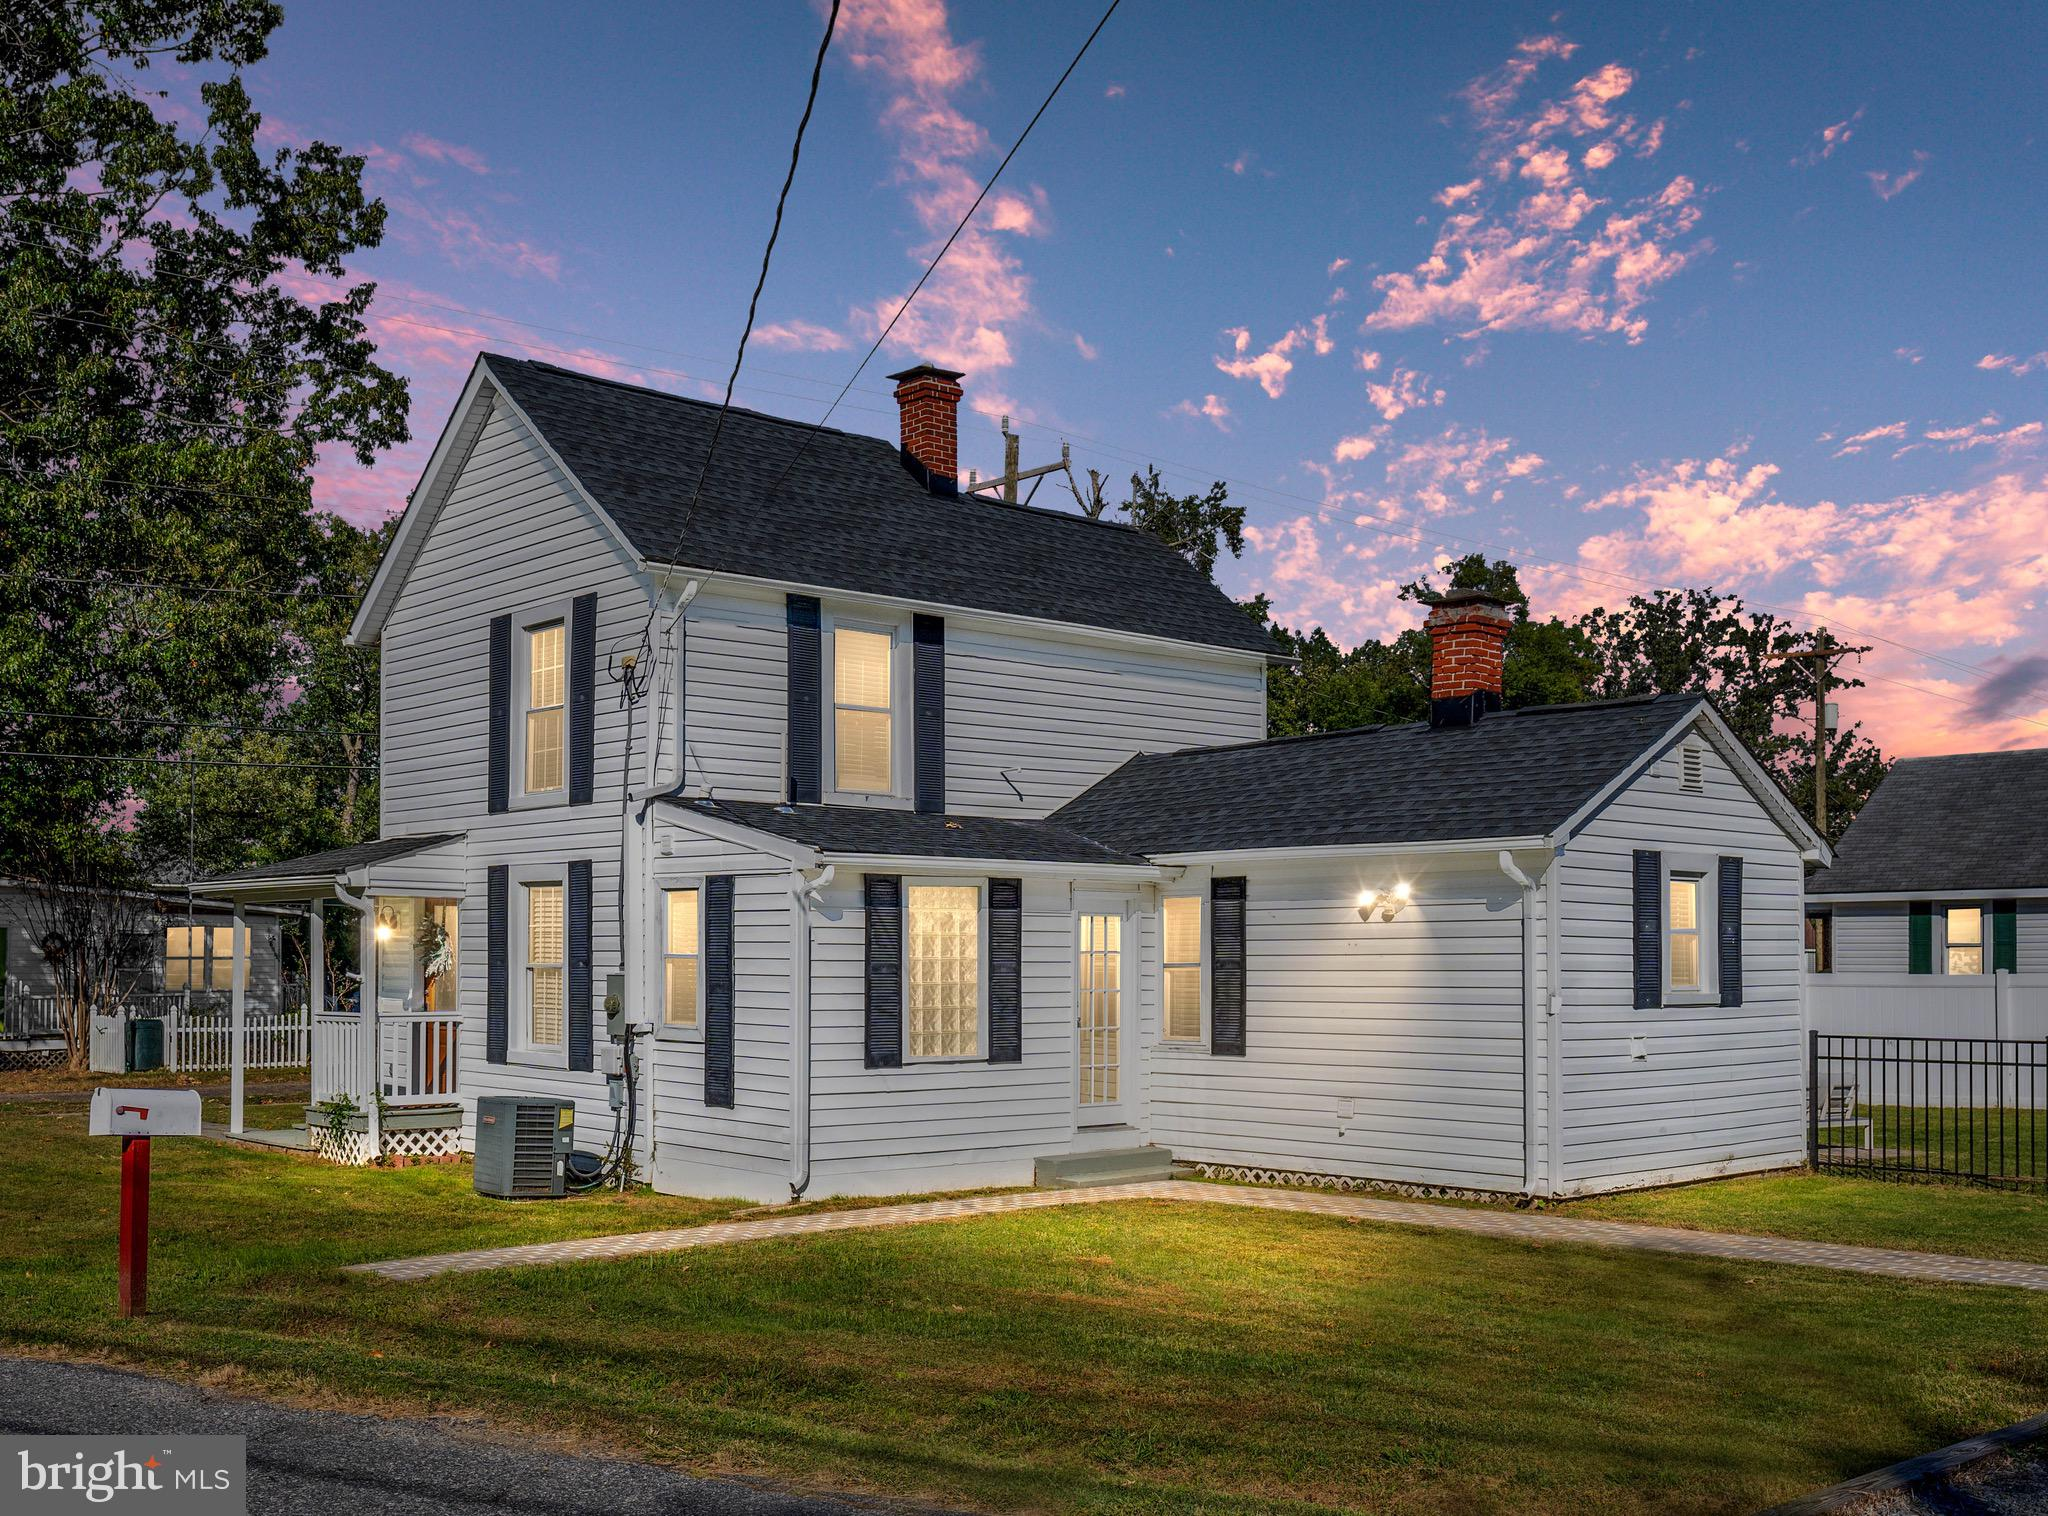 Built in 1930, the Storybook House is a charming farmhouse sitting right on the point of Colonial Beach, VA! The house has been newly renovated with a modern touch to feel bright, open and welcoming! Home sits on a corner lot with water view, the outside features spacious fenced yard with vinyl privacy fence, a large shed with space for golf cart, brand new custom patio + walkways, new driveway with space for 4 cars and a comfy front porch with rocking chairs. Recent interior renovations include: fresh paint throughout, front door, farm door, kitchen island & backsplash, light fixtures, washer/dryer & more! Also features hardwood floors, a spa bathroom with soaking tub, open concept floor plan & incredible natural lighting! Fantastic location within walking distance to the beach and restaurants on Washington Ave, this house is perfect for a summer home or a peaceful full-time refuge.